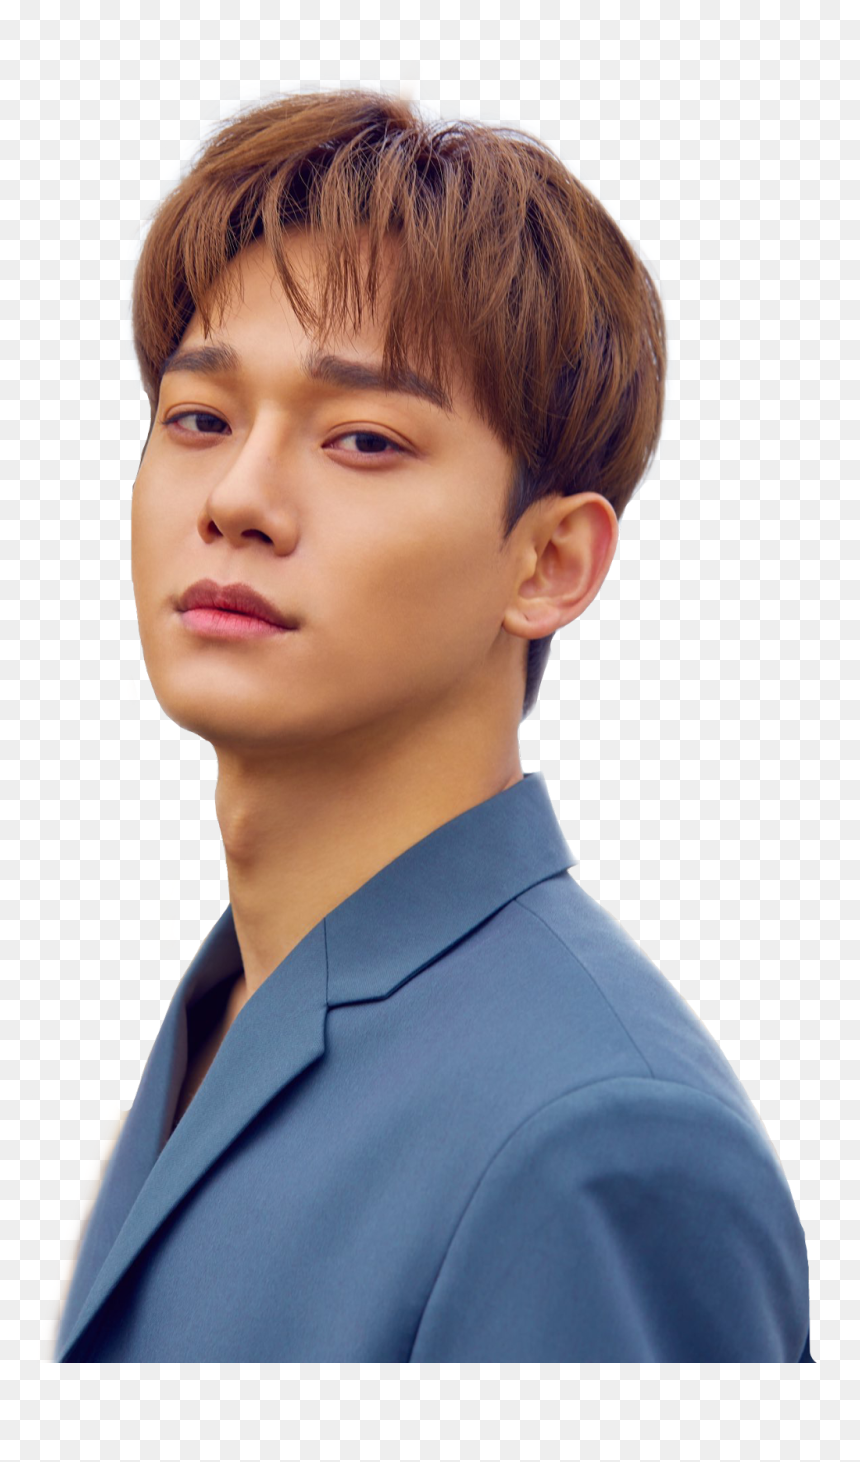 #chen #exo #beautifulgoodbye #handsome #asian #kimjongdae - Chen Exo April And A Flower, HD Png Download